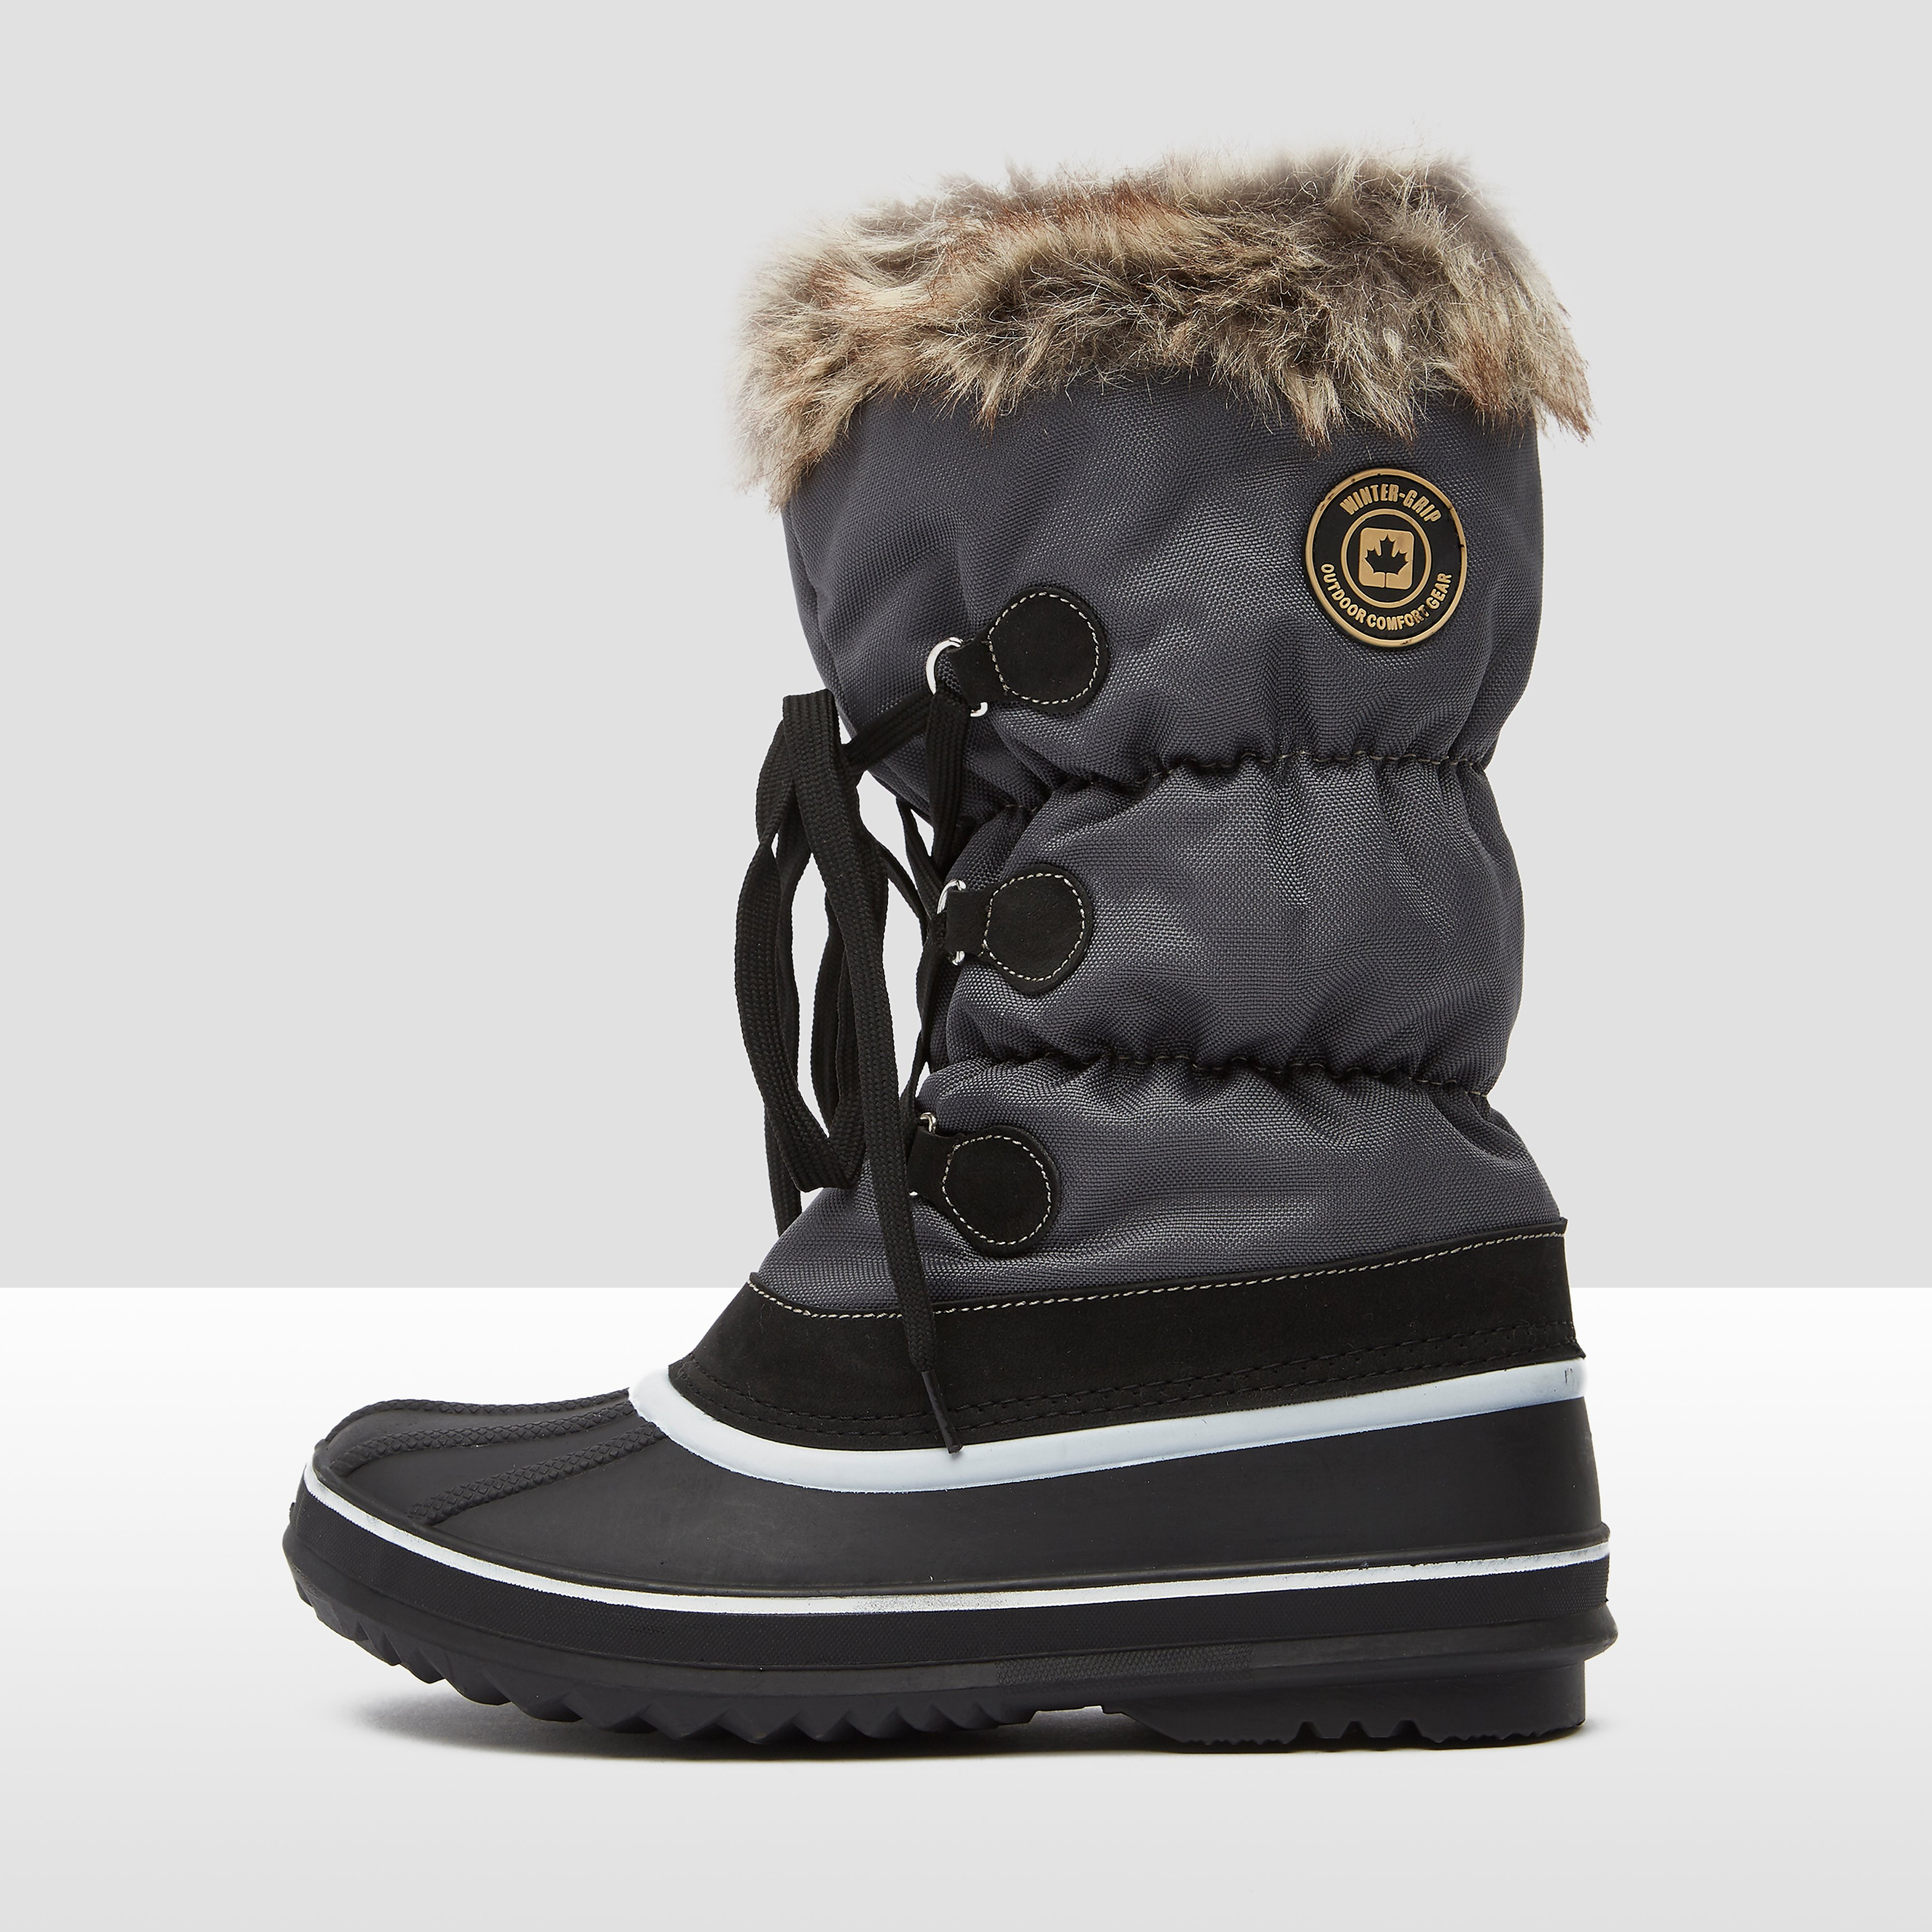 WINTER-GRIP LACE UP SNOWBOOTS WIT